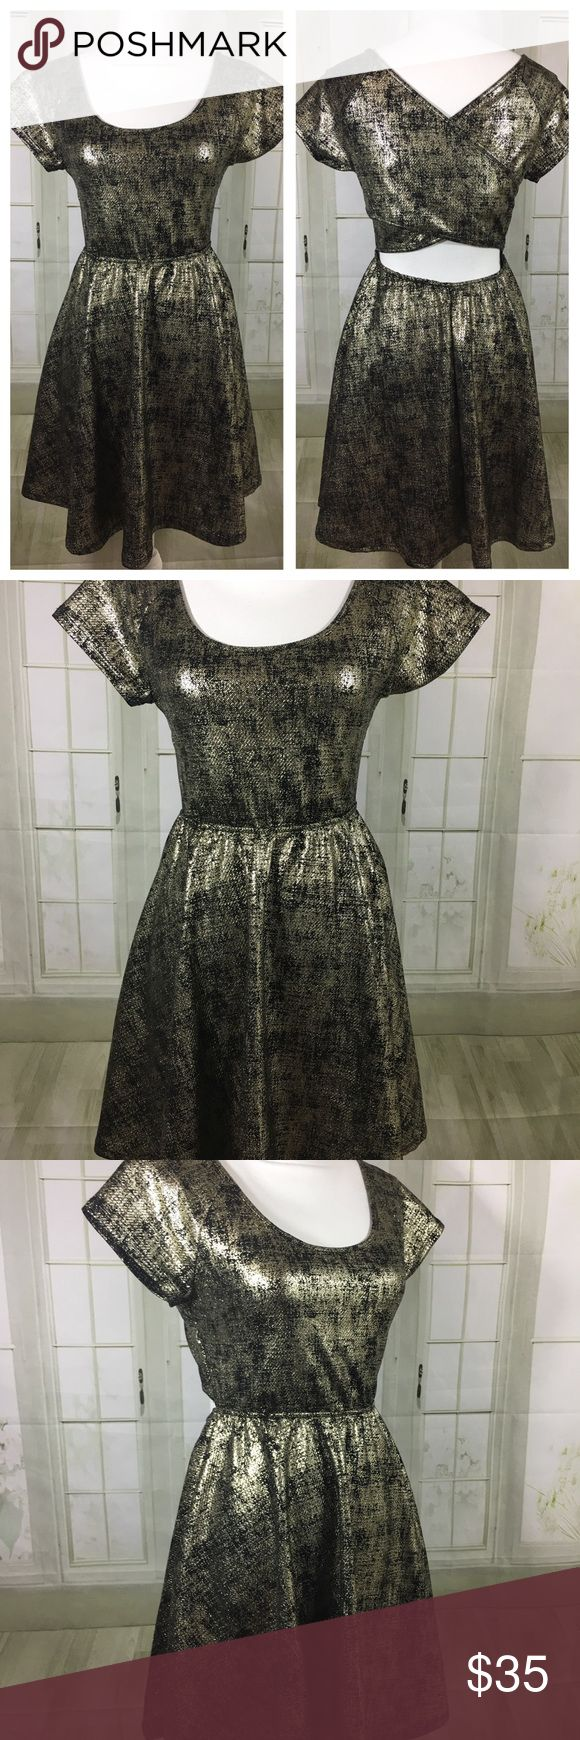 """NWOT Rolla Coaster gold metallic party dress Sz M New without tags!  Pullover, lightweight, frabric gives additional stretch. Back cut out design.   Approx. Measurements laying flat:  Underarm to underarm: 16""""  Waist: 12 1/2"""" - Stretches  Length: 33""""   Questions please ask!   Bin#2 rolla coaster Dresses Mini"""